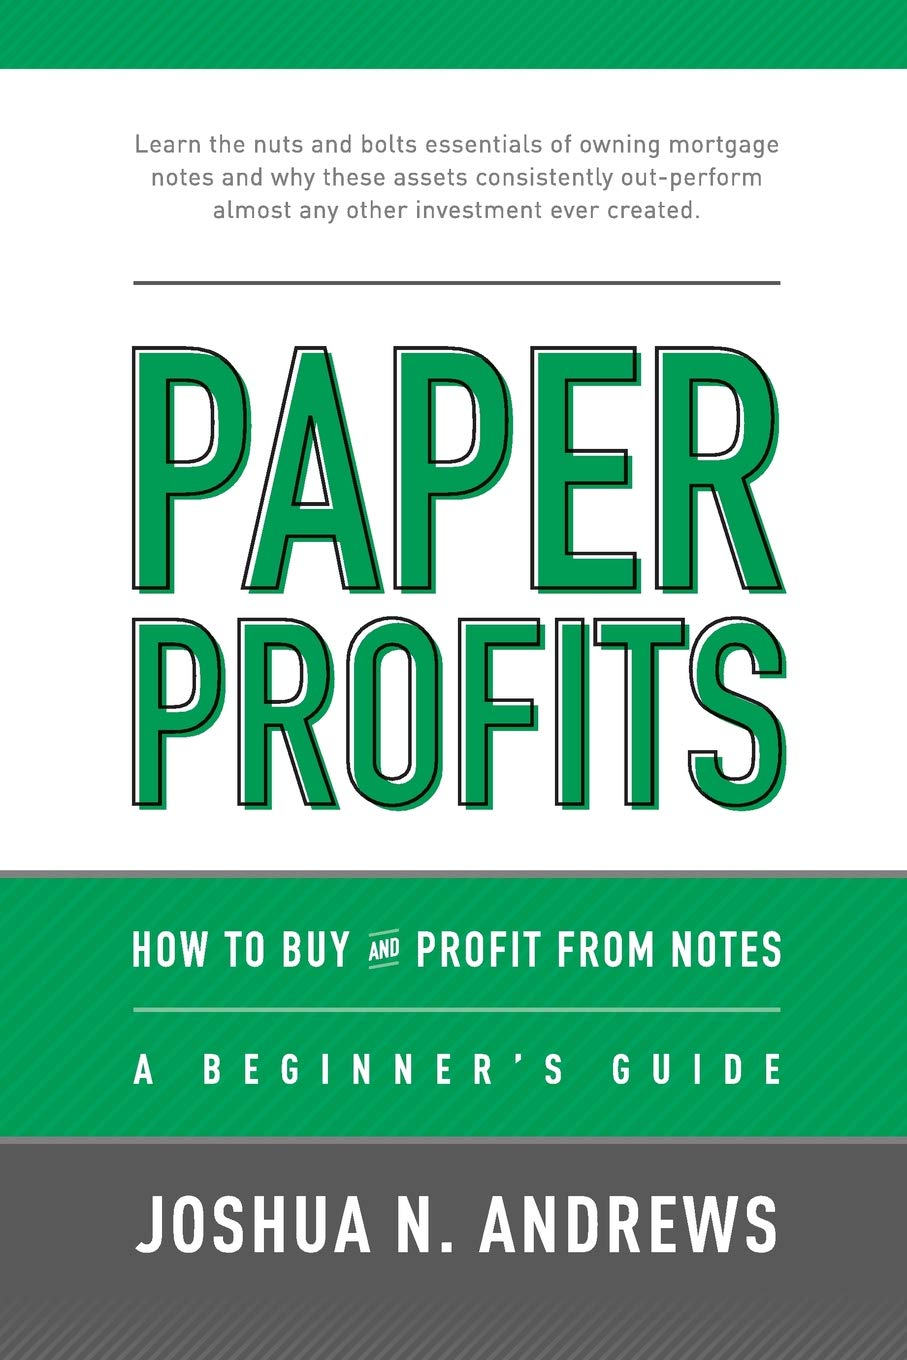 Read Online Paper Profits: How to Buy and Profit from Notes: A Beginner's Guide: Learn the nuts and bolts essentials of owning mortgage notes and why these assets ... almost any other investment ever created. pdf epub